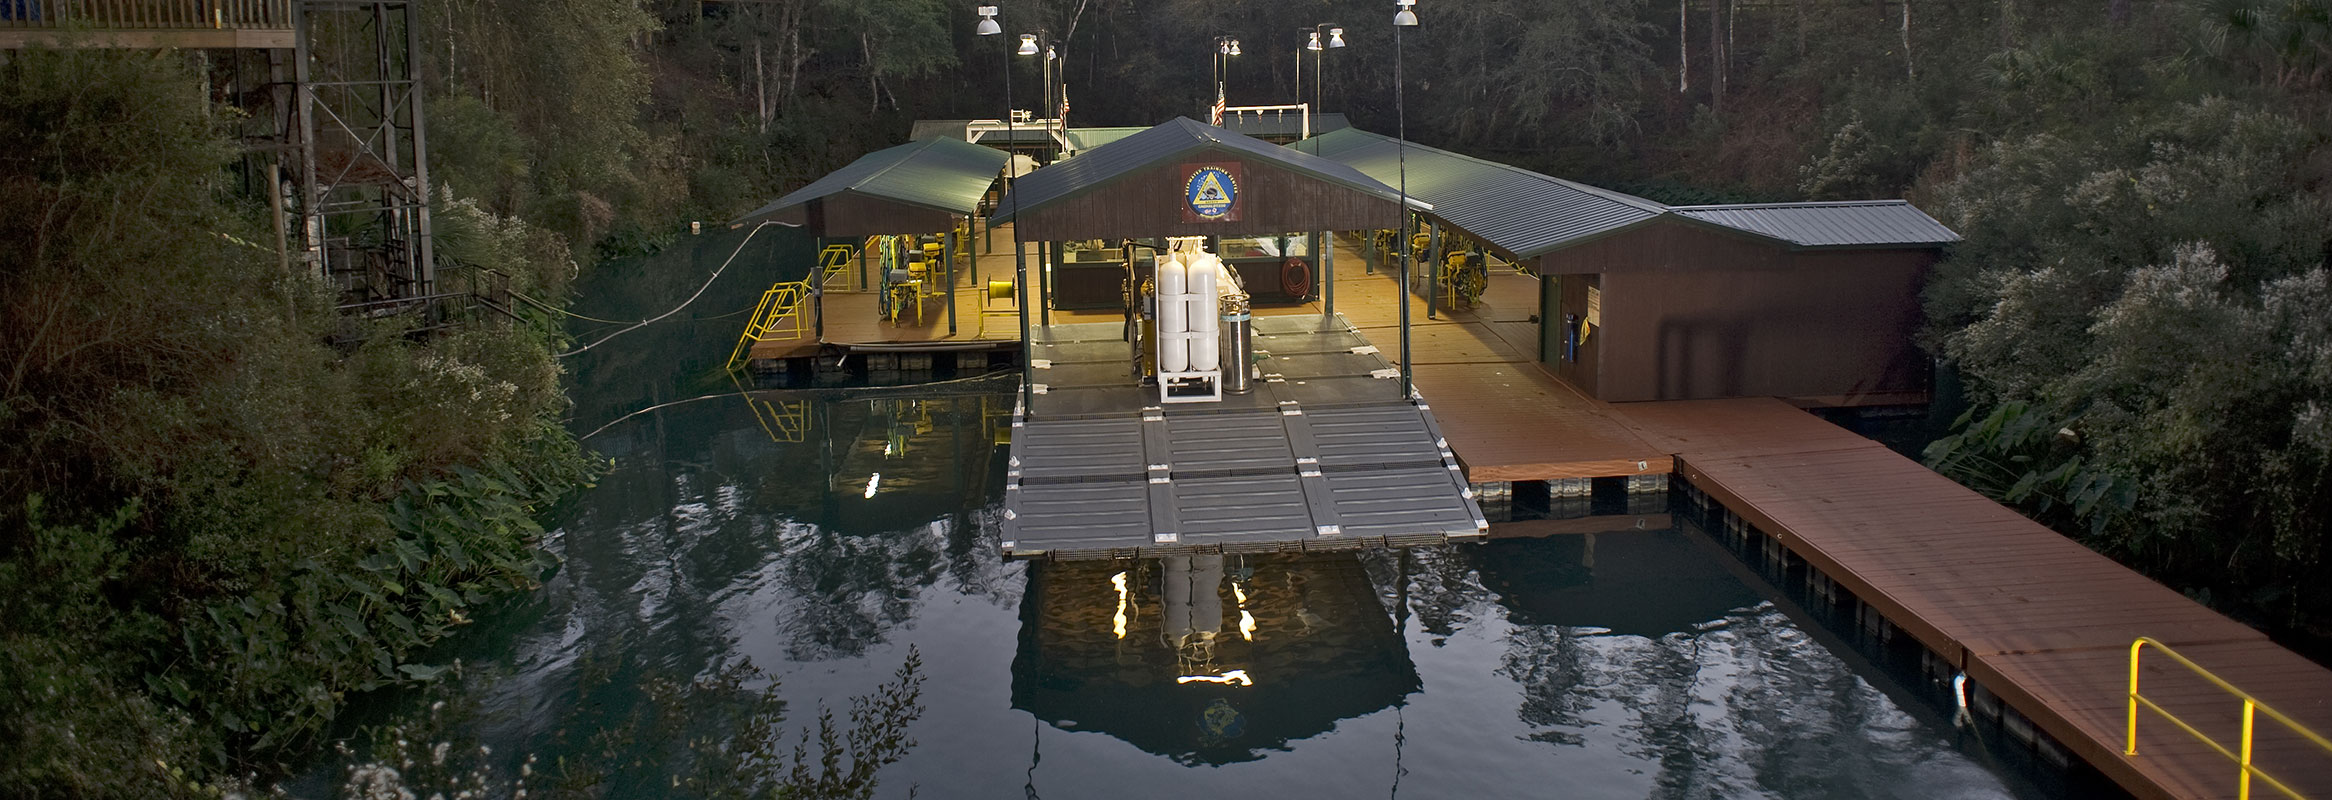 CDA Commercial Diving School Facilities